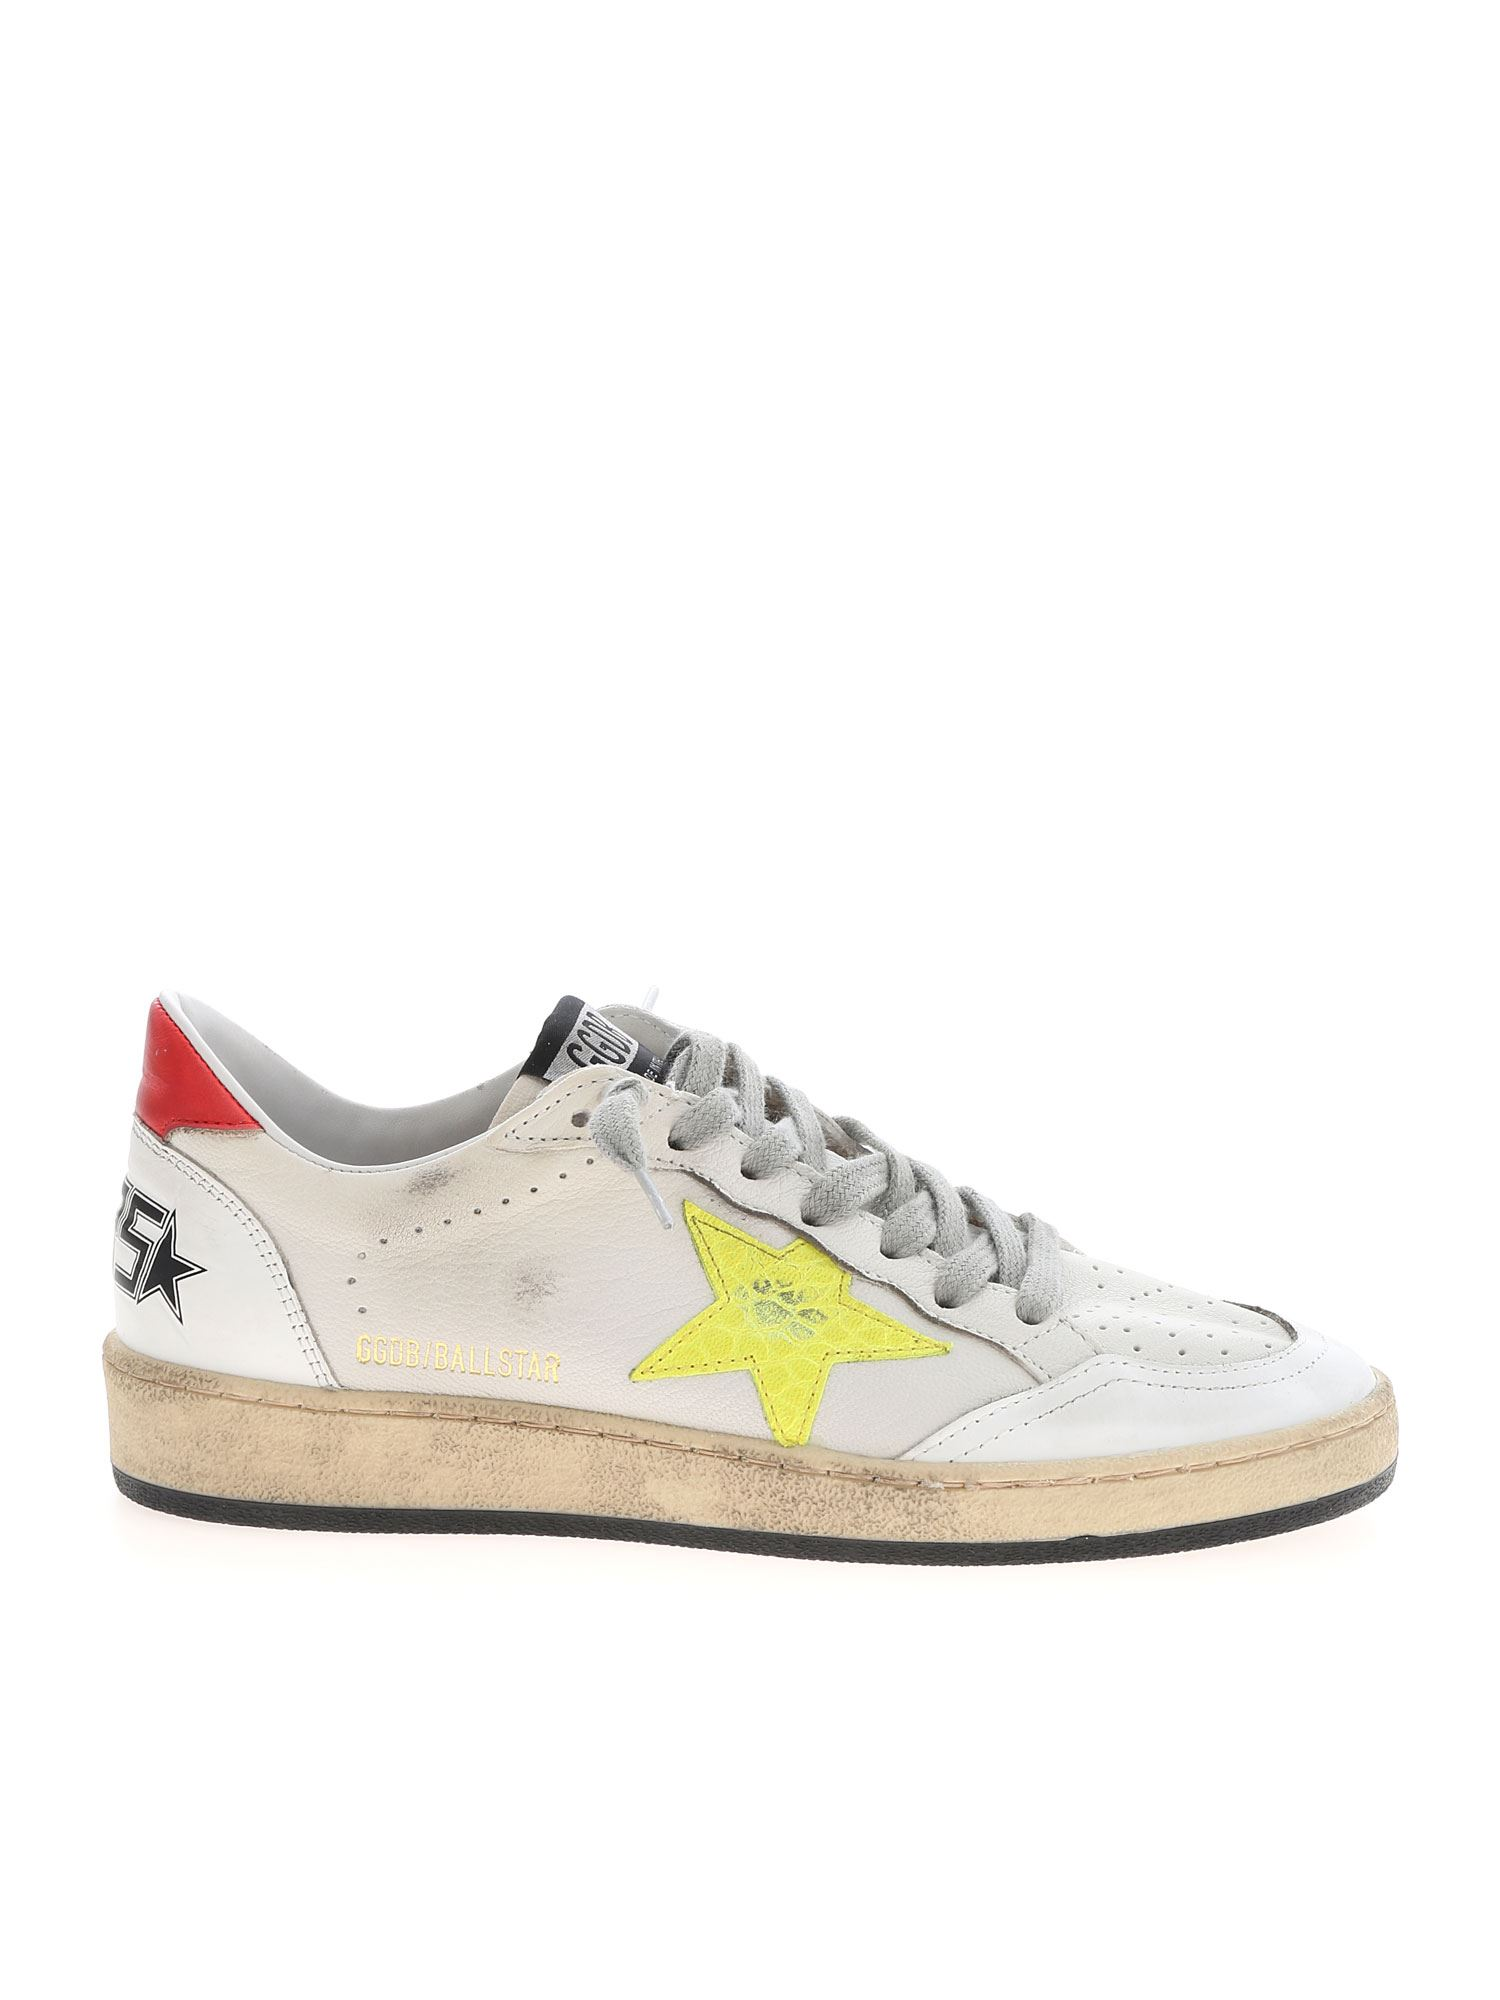 Golden Goose BALL STAR SNEAKERS IN WHITE, RED AND YELLOW